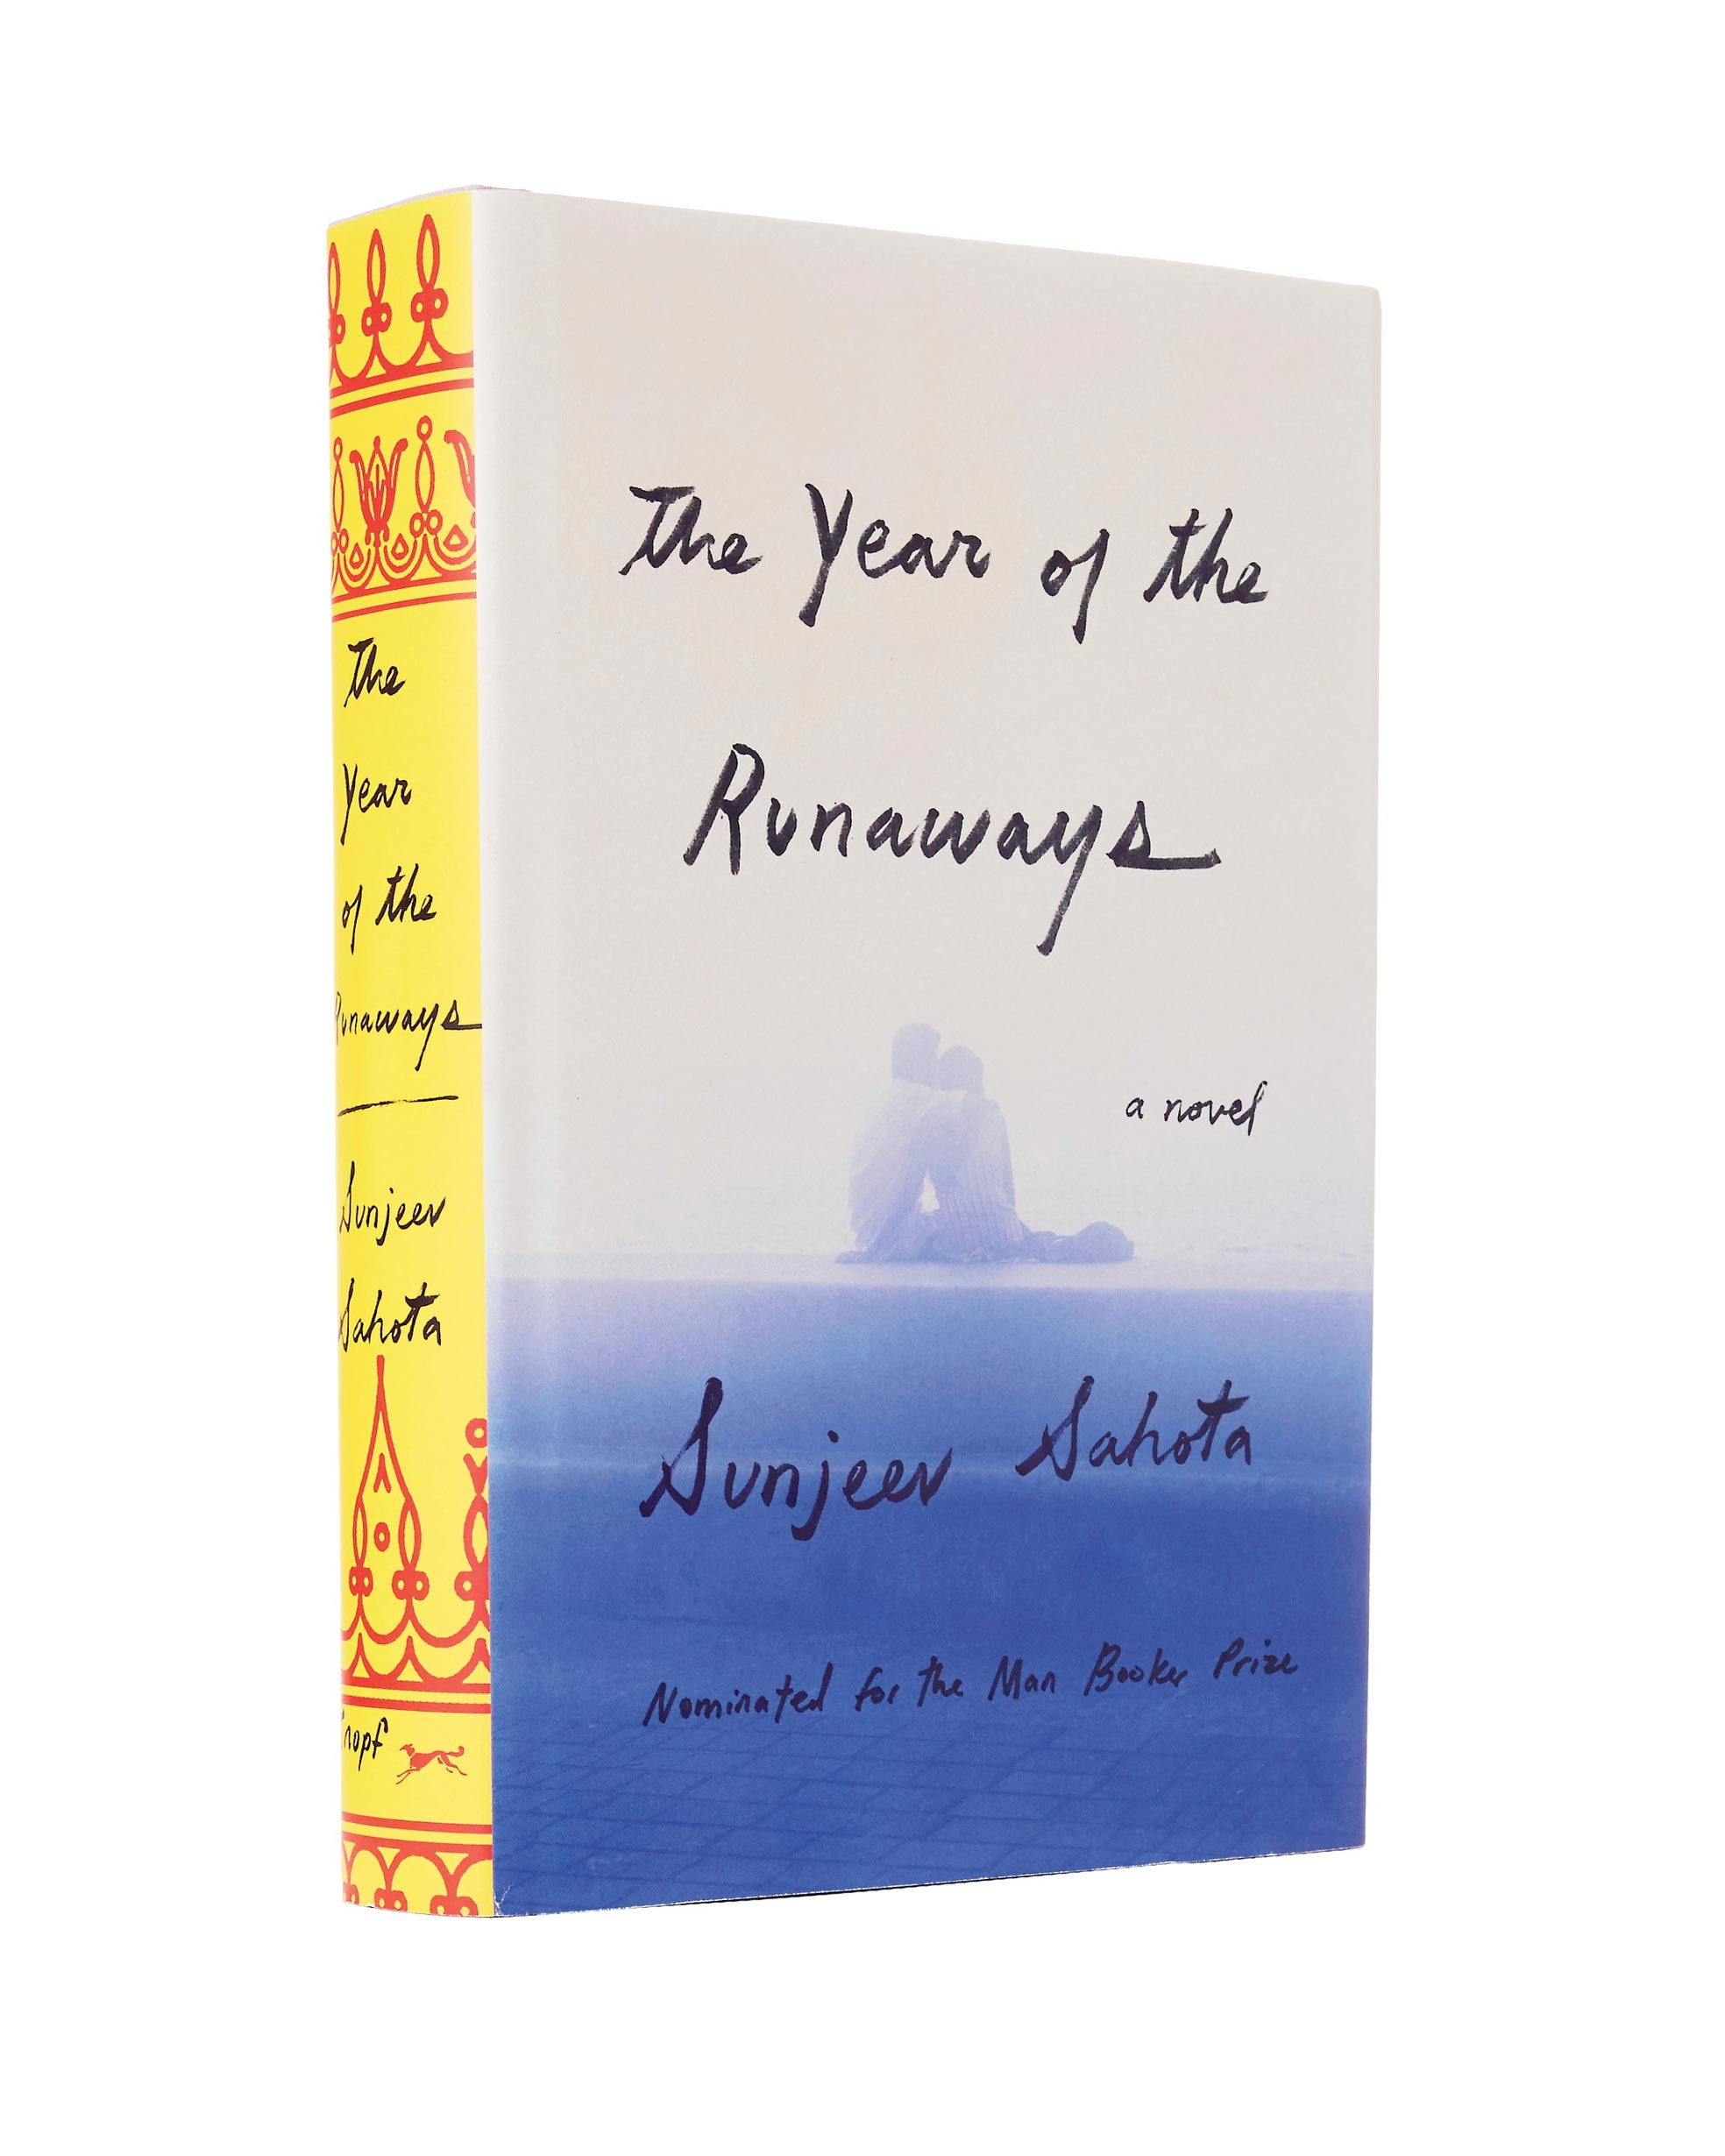 book-the-year-of-the-runaways-030-d112770-0216.jpg